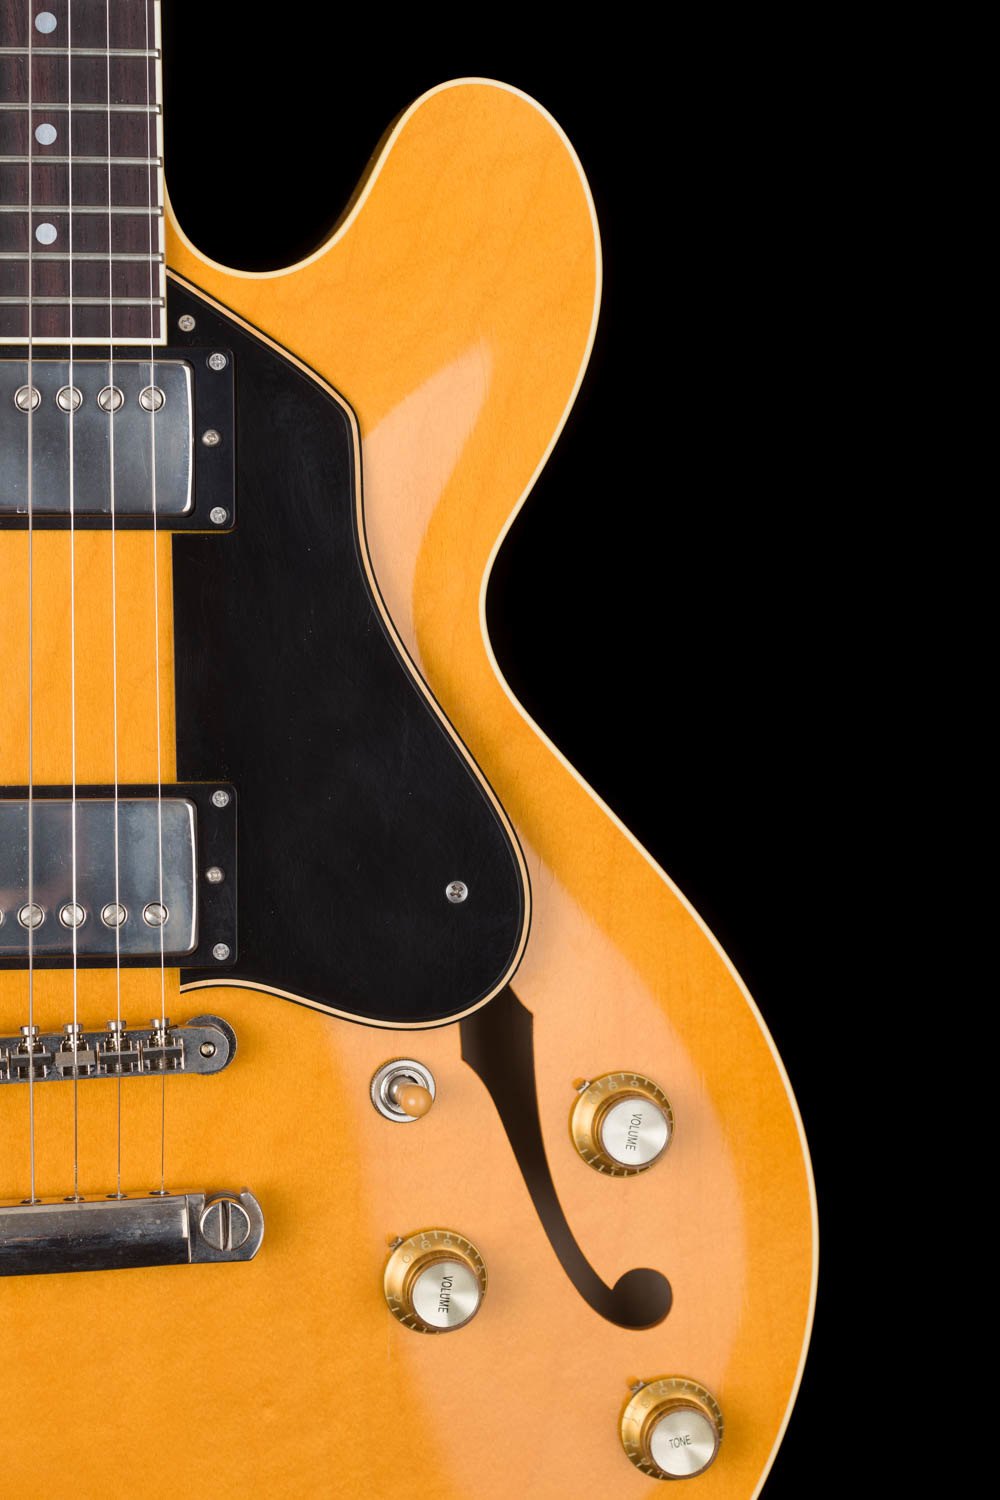 The brand new Collings I-35 LC Vintage!